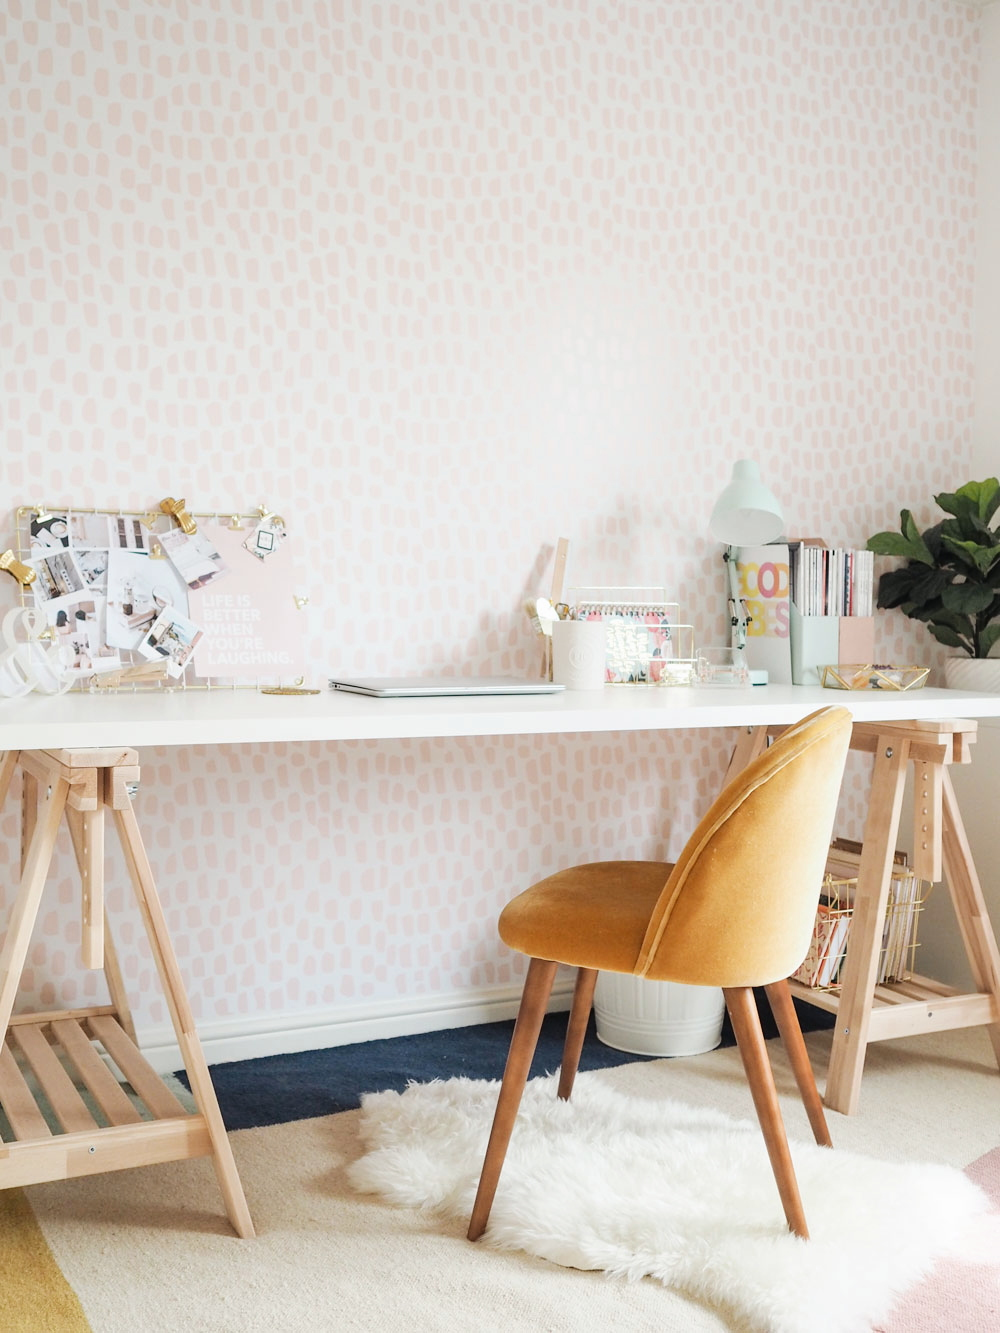 Manifest your dream clients by making small but powerful changes to your home office decoration and layout.